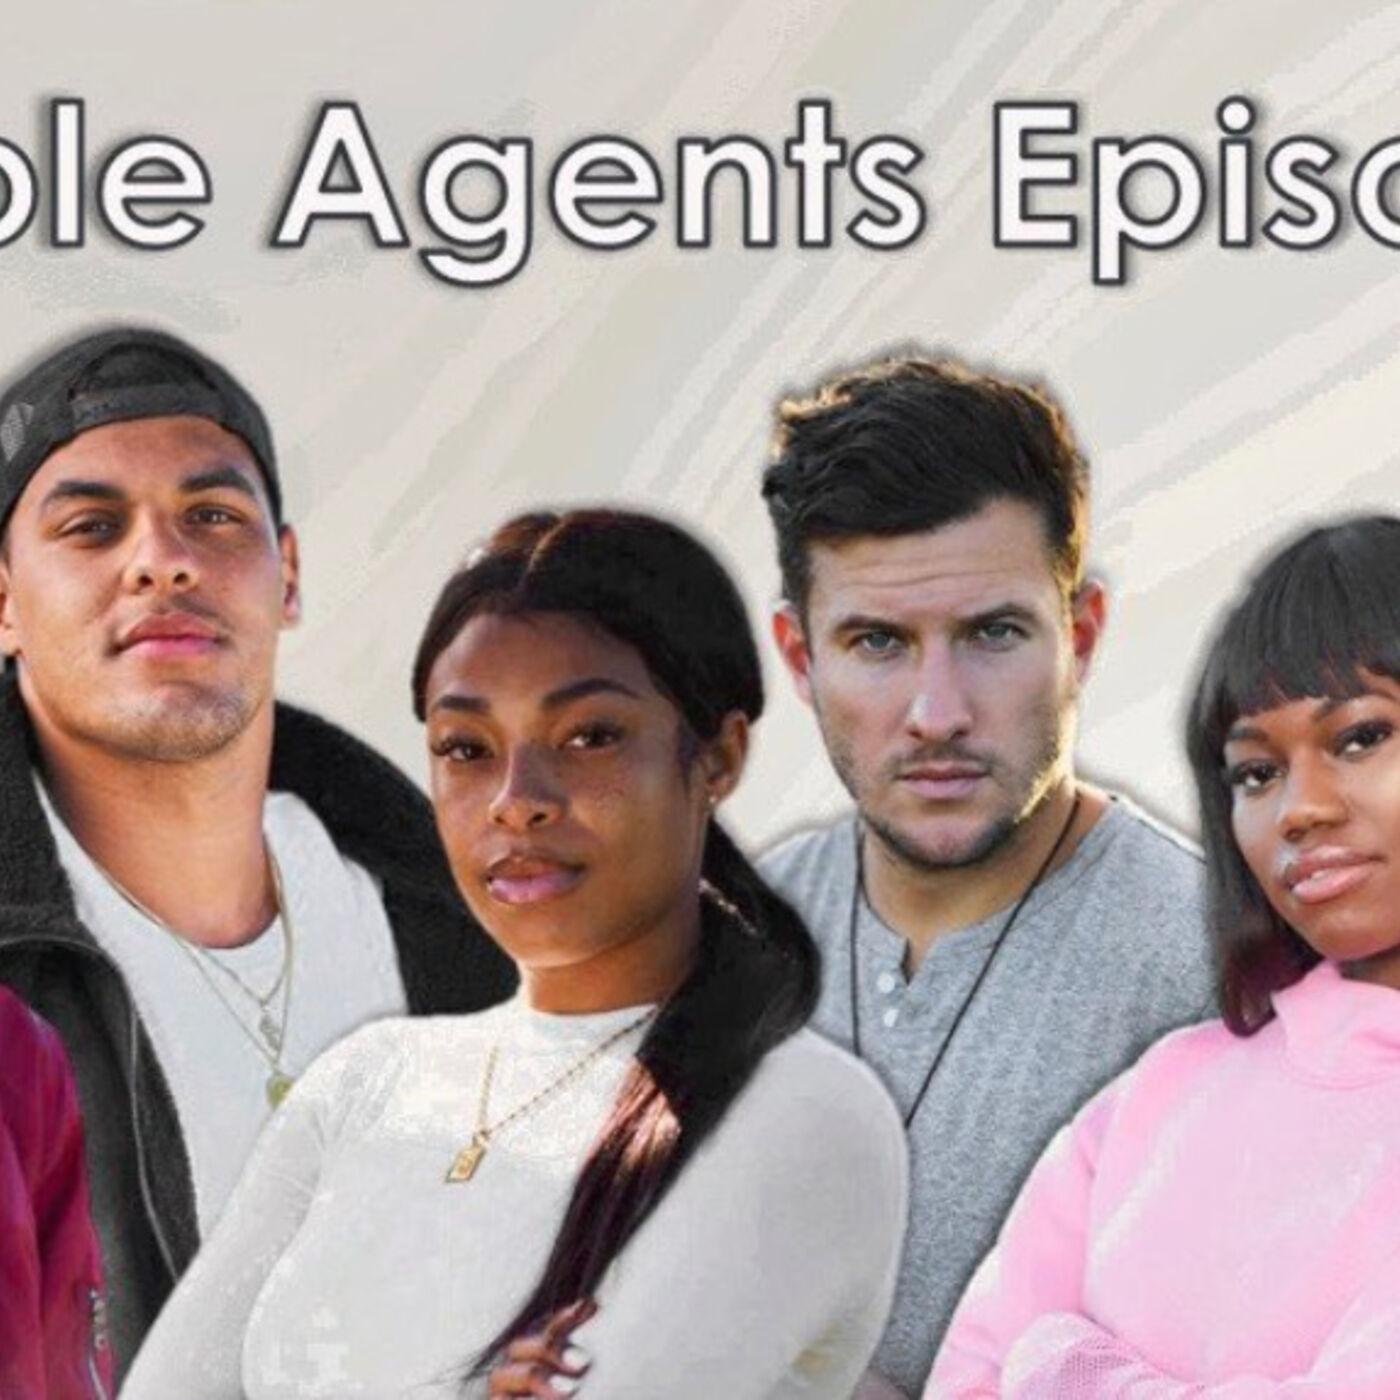 Challenge Double Agents Episode 3 Recap: I just want to cook my eggs